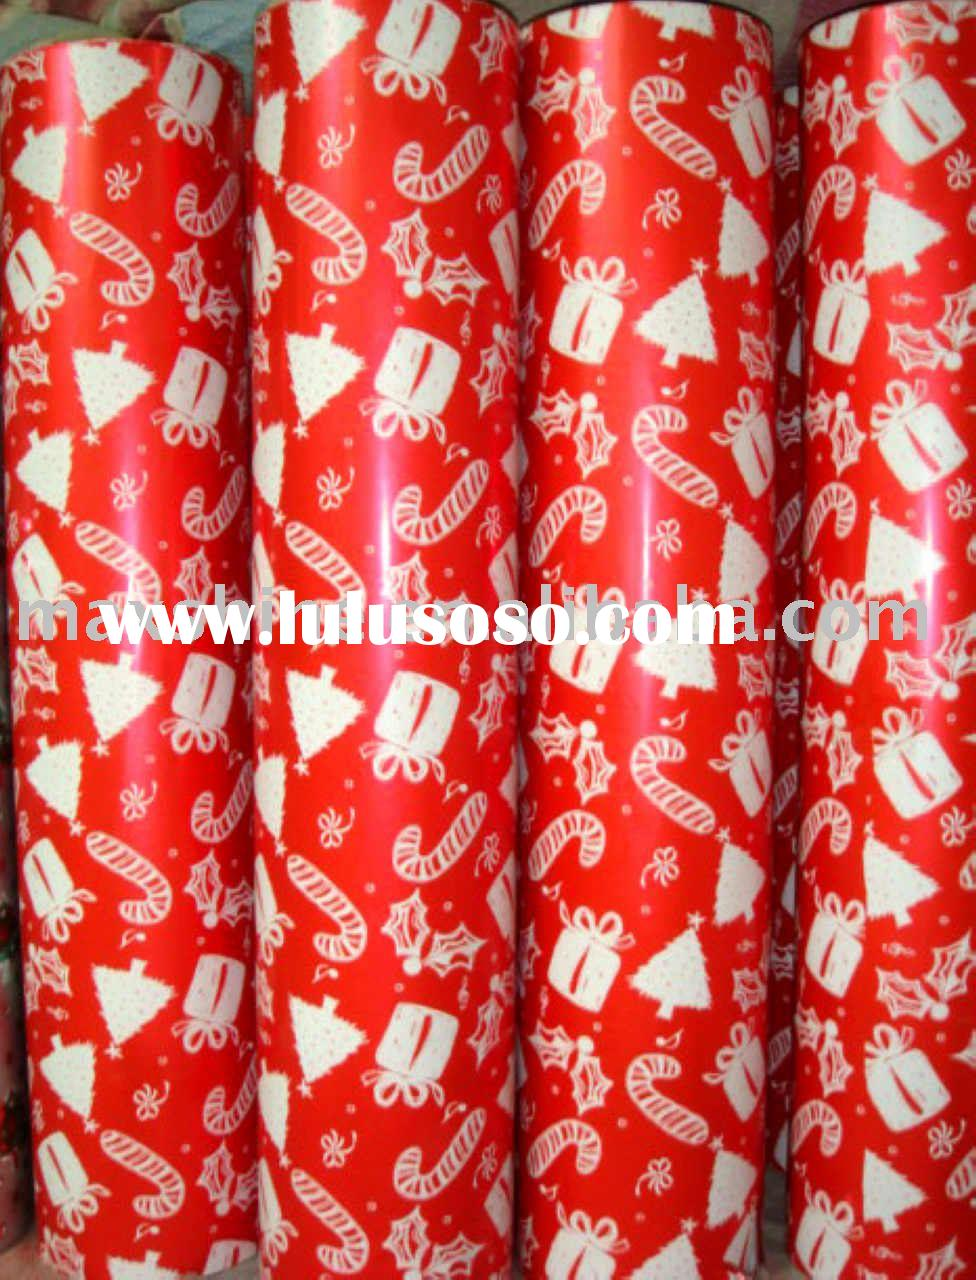 Christmas wrapping paper(Jumbo Roll)